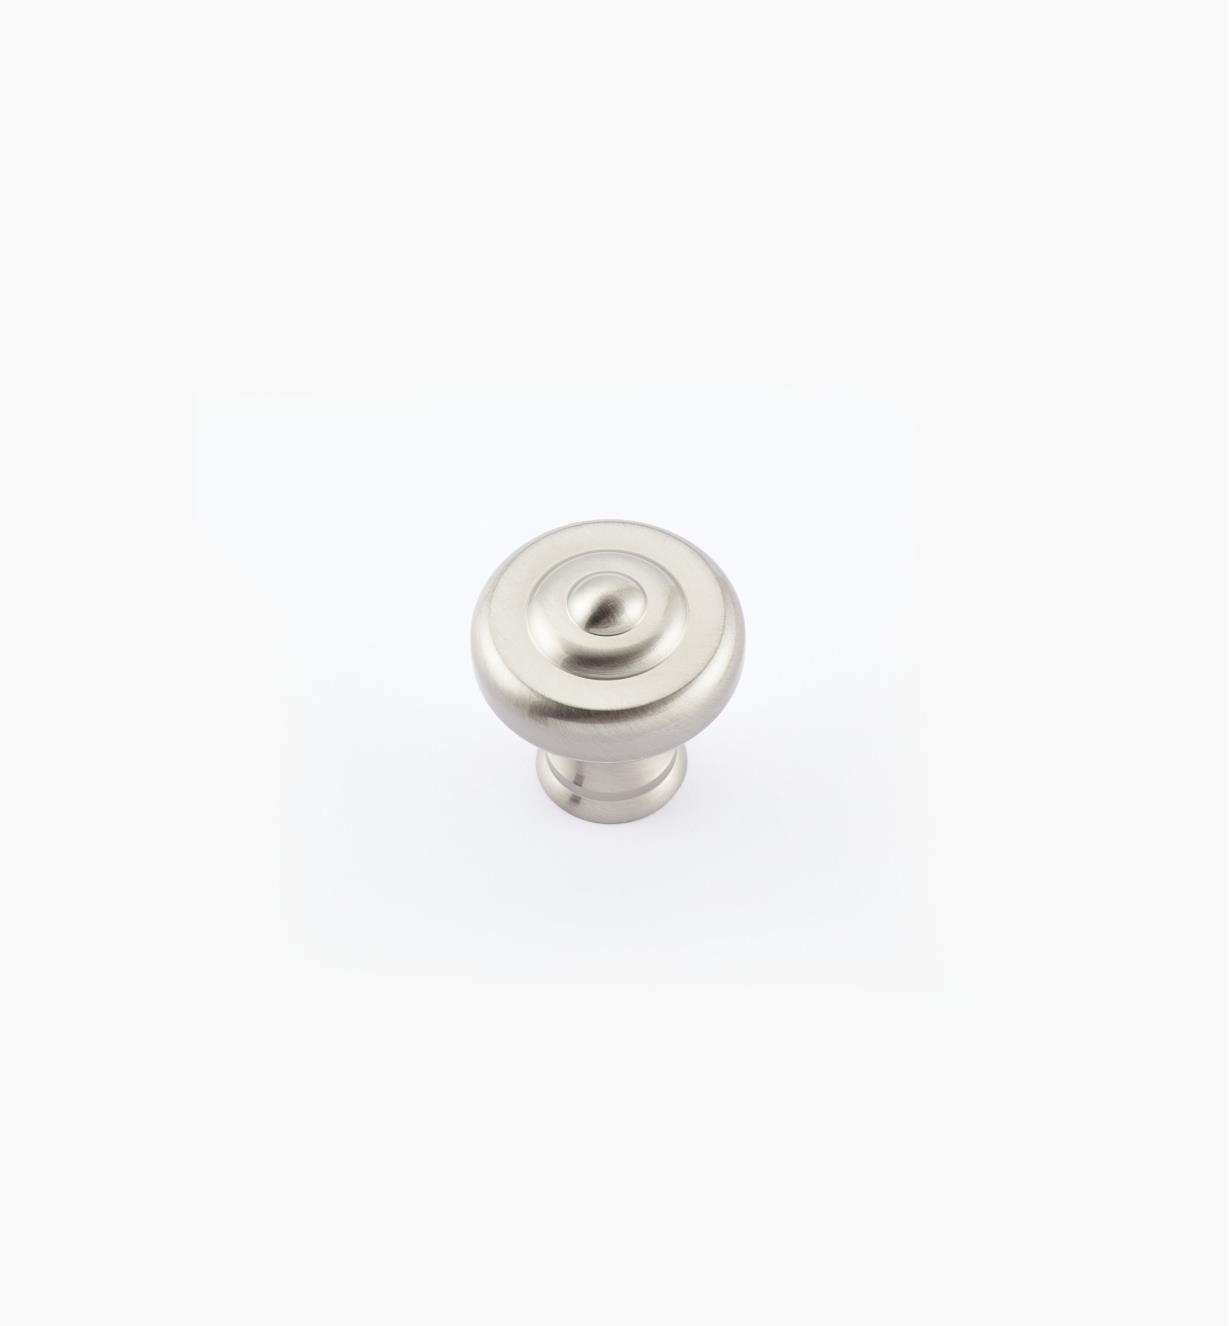 "02W1822 - 1 1/4"" x 1 3/8"" Dull Nickel Ring Knob"